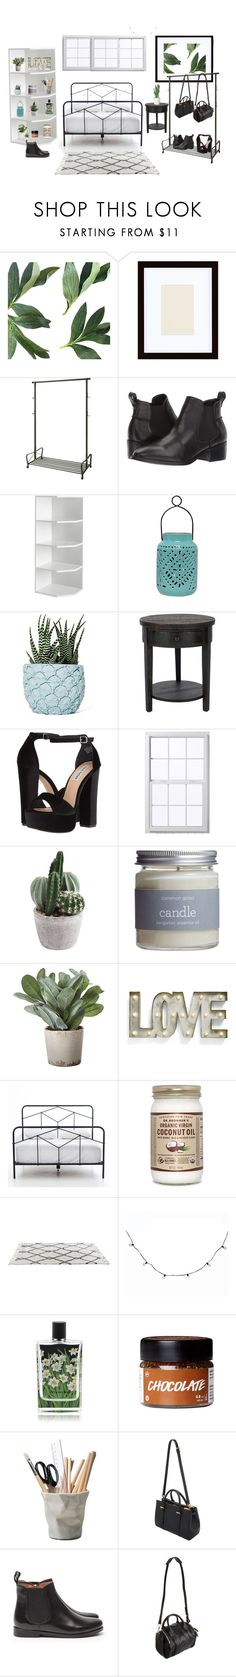 """If I had a dorm"" by ale-directioner-16 on Polyvore featuring interior, interiors, interior design, hogar, home decor, interior decorating, Pottery Barn, Steve Madden, WALL y Chen Chen & Kai Williams"